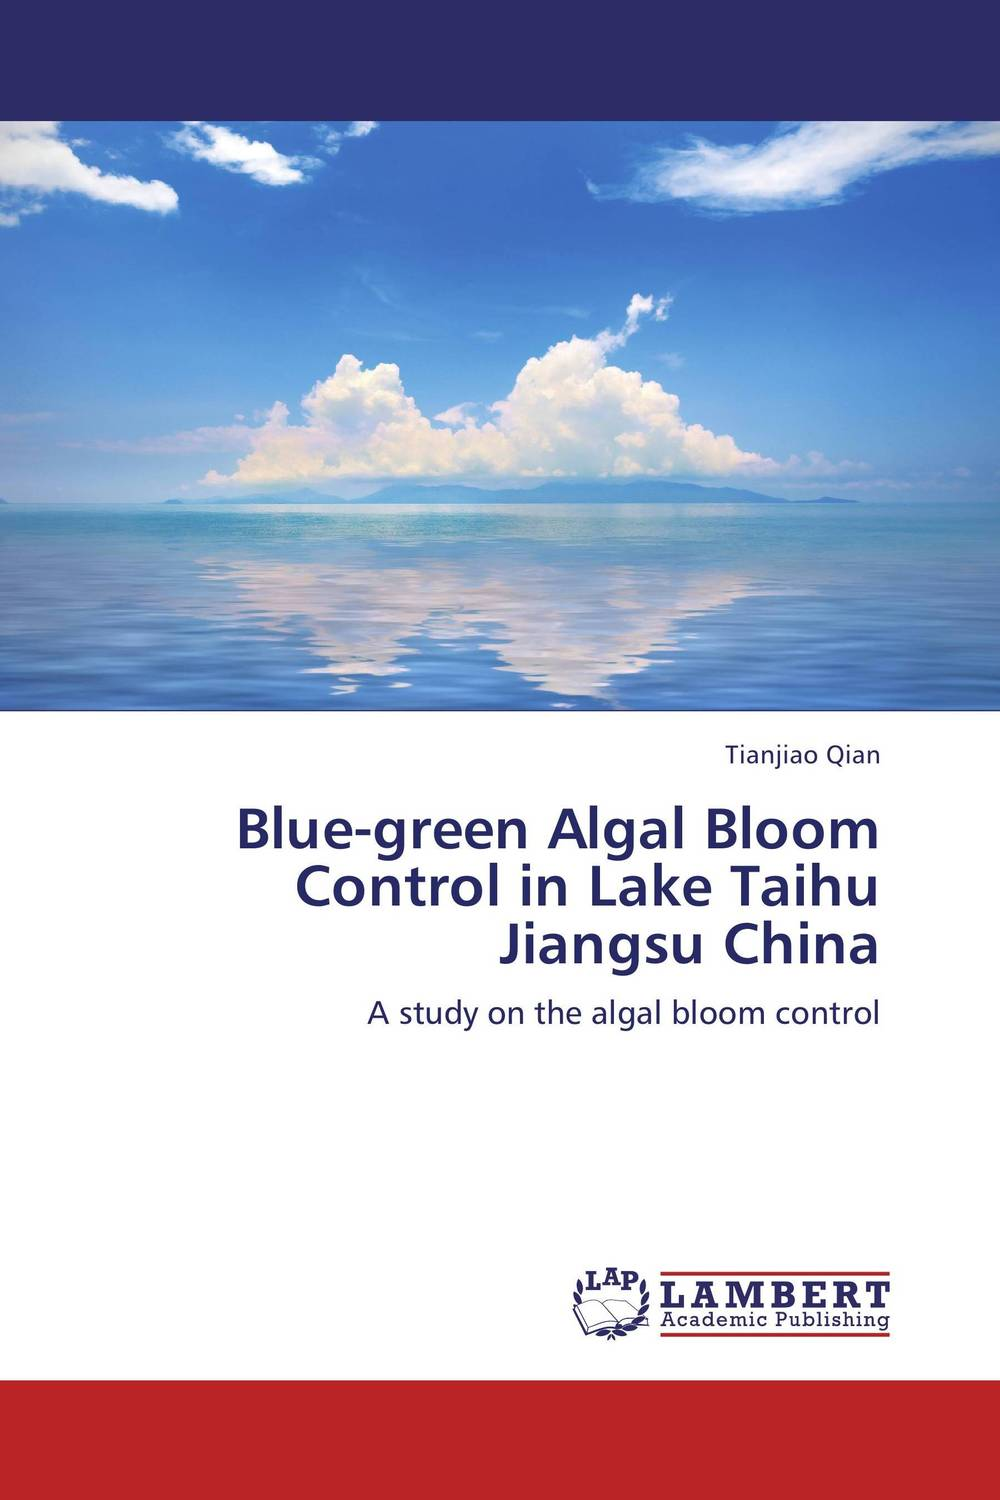 Blue-green Algal Bloom Control in Lake Taihu Jiangsu China algal blooms at north delta egypt